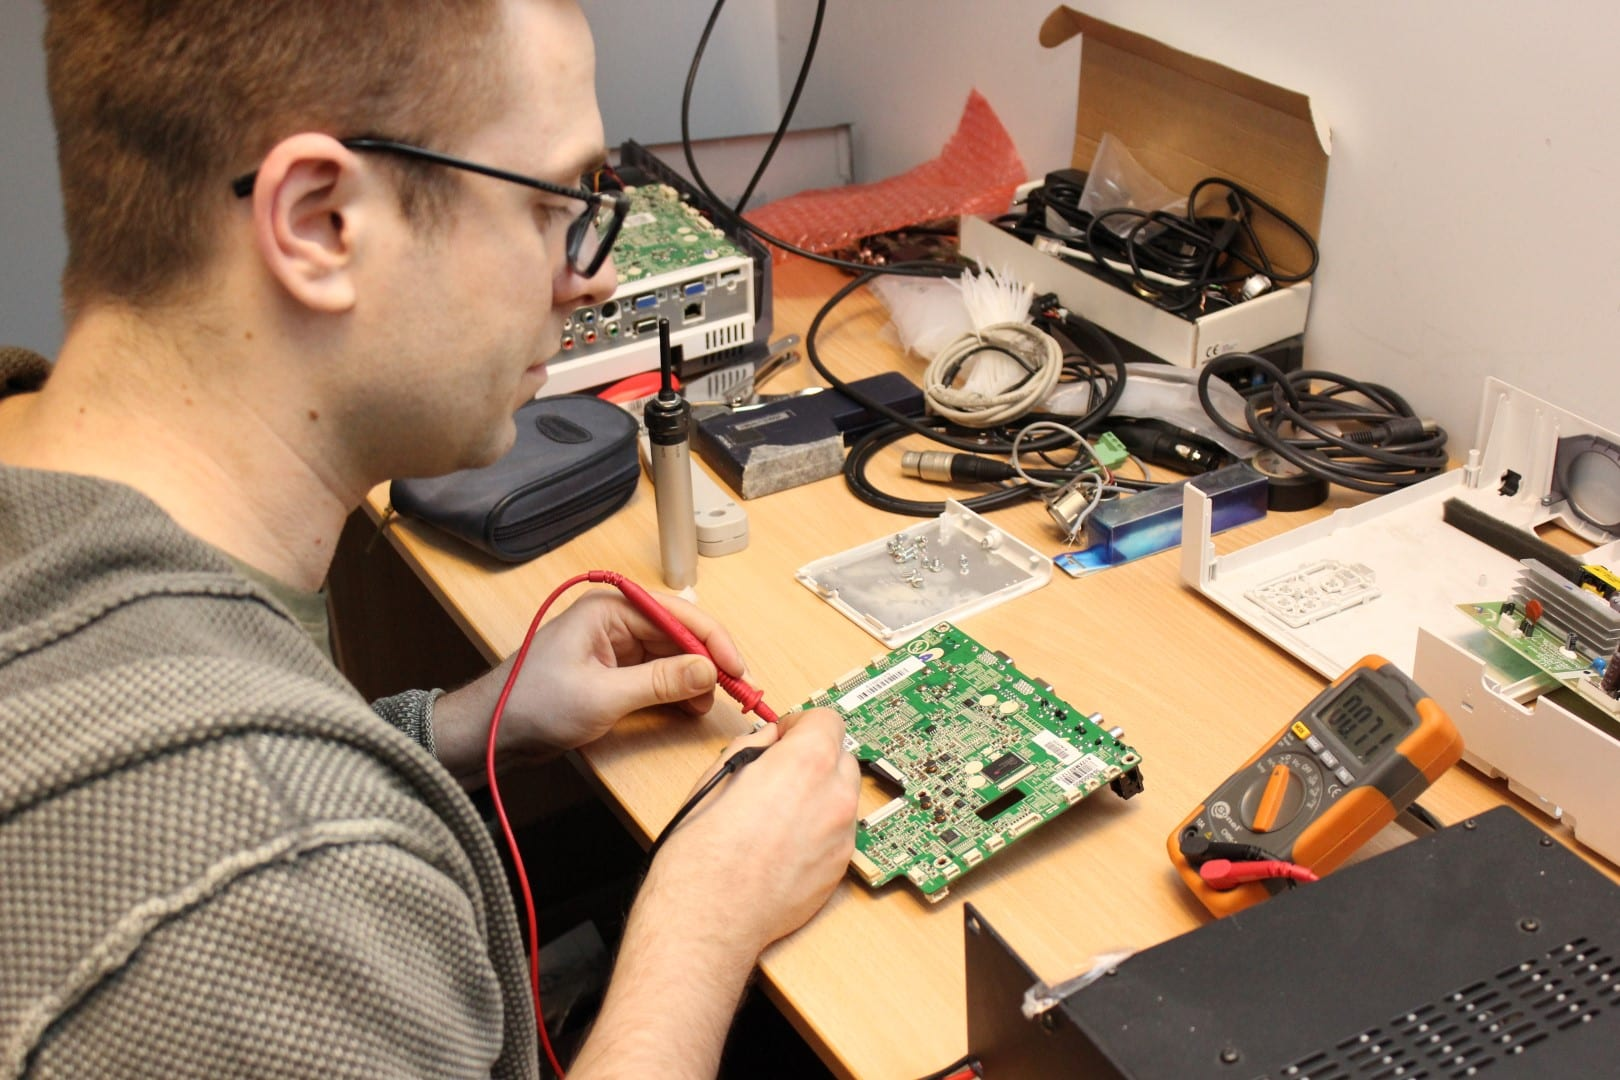 Testing continuity with a digital multimeter